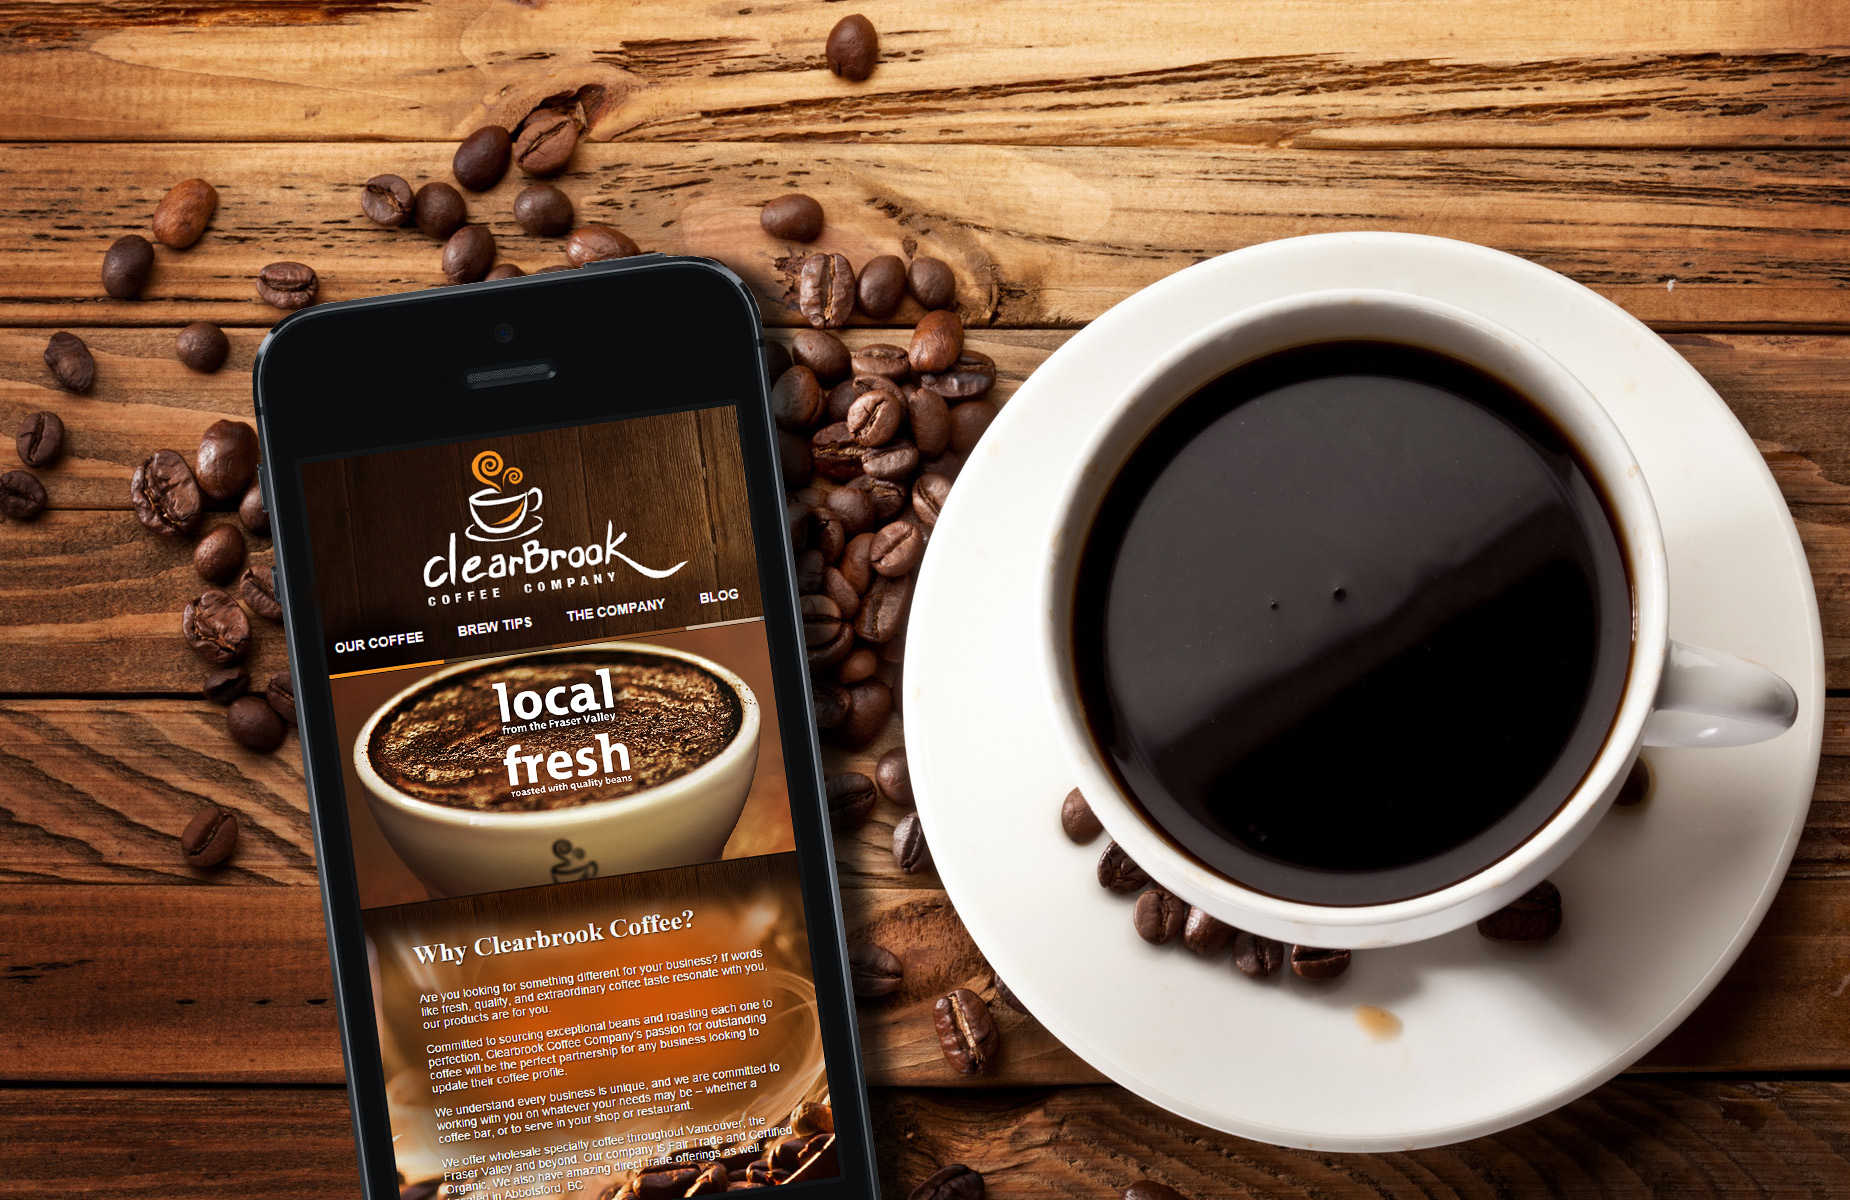 Clearbrook Coffee Abbotsford website design